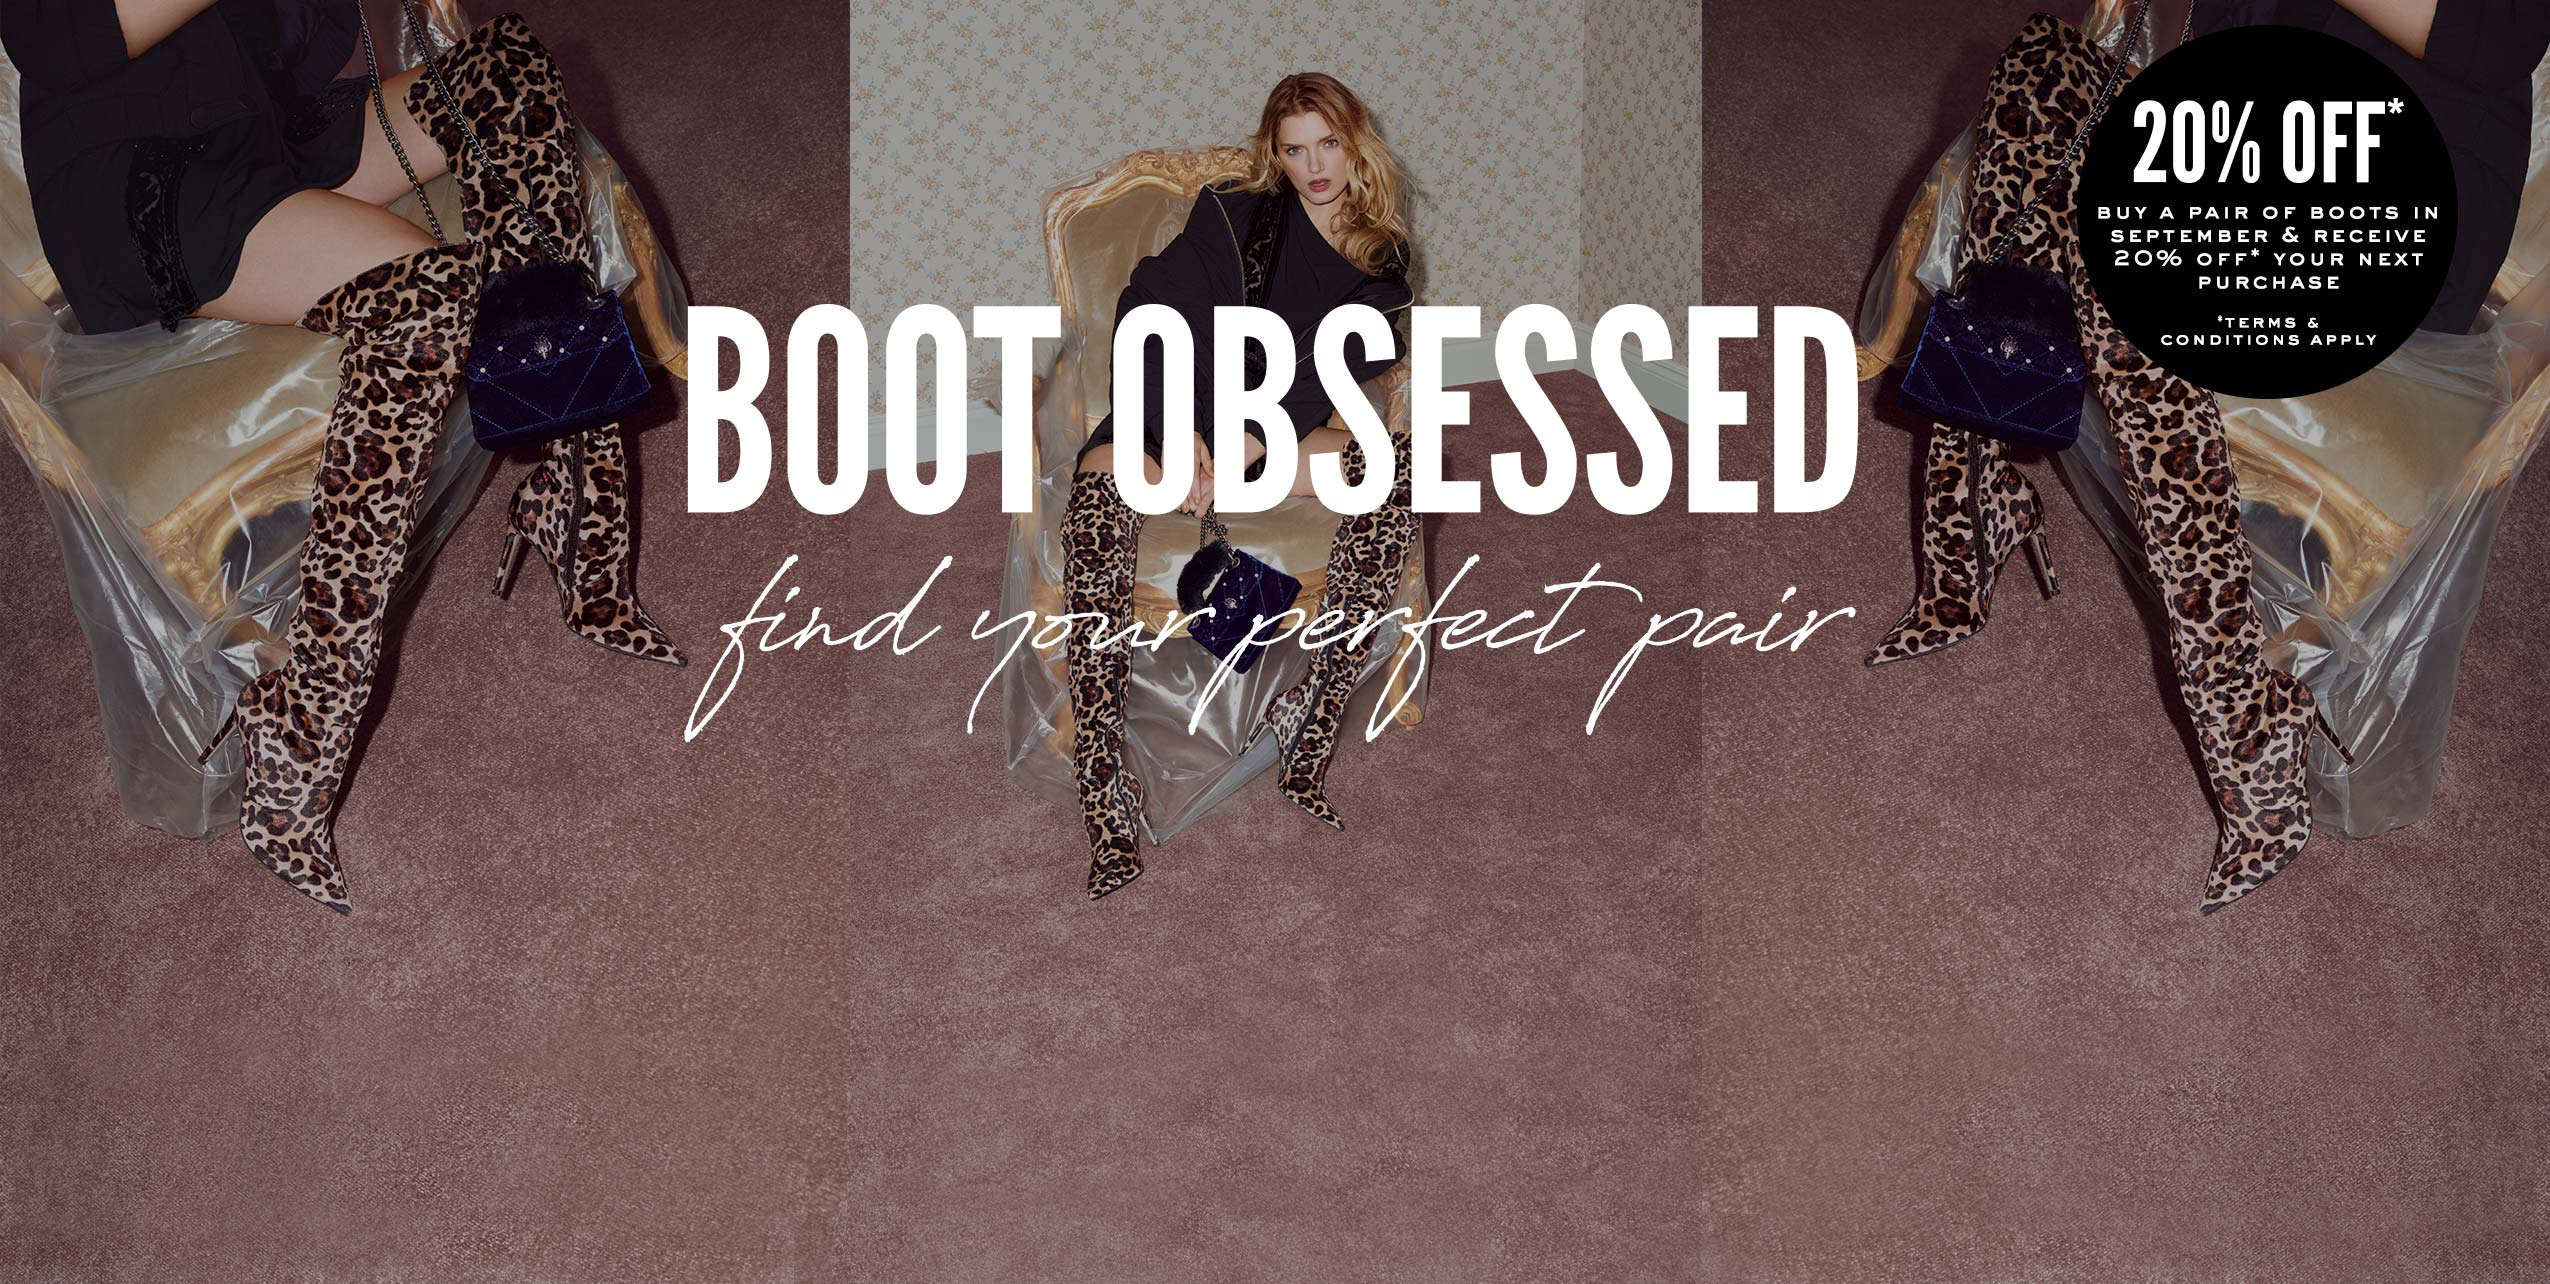 boot obsessed: find your perfect pair